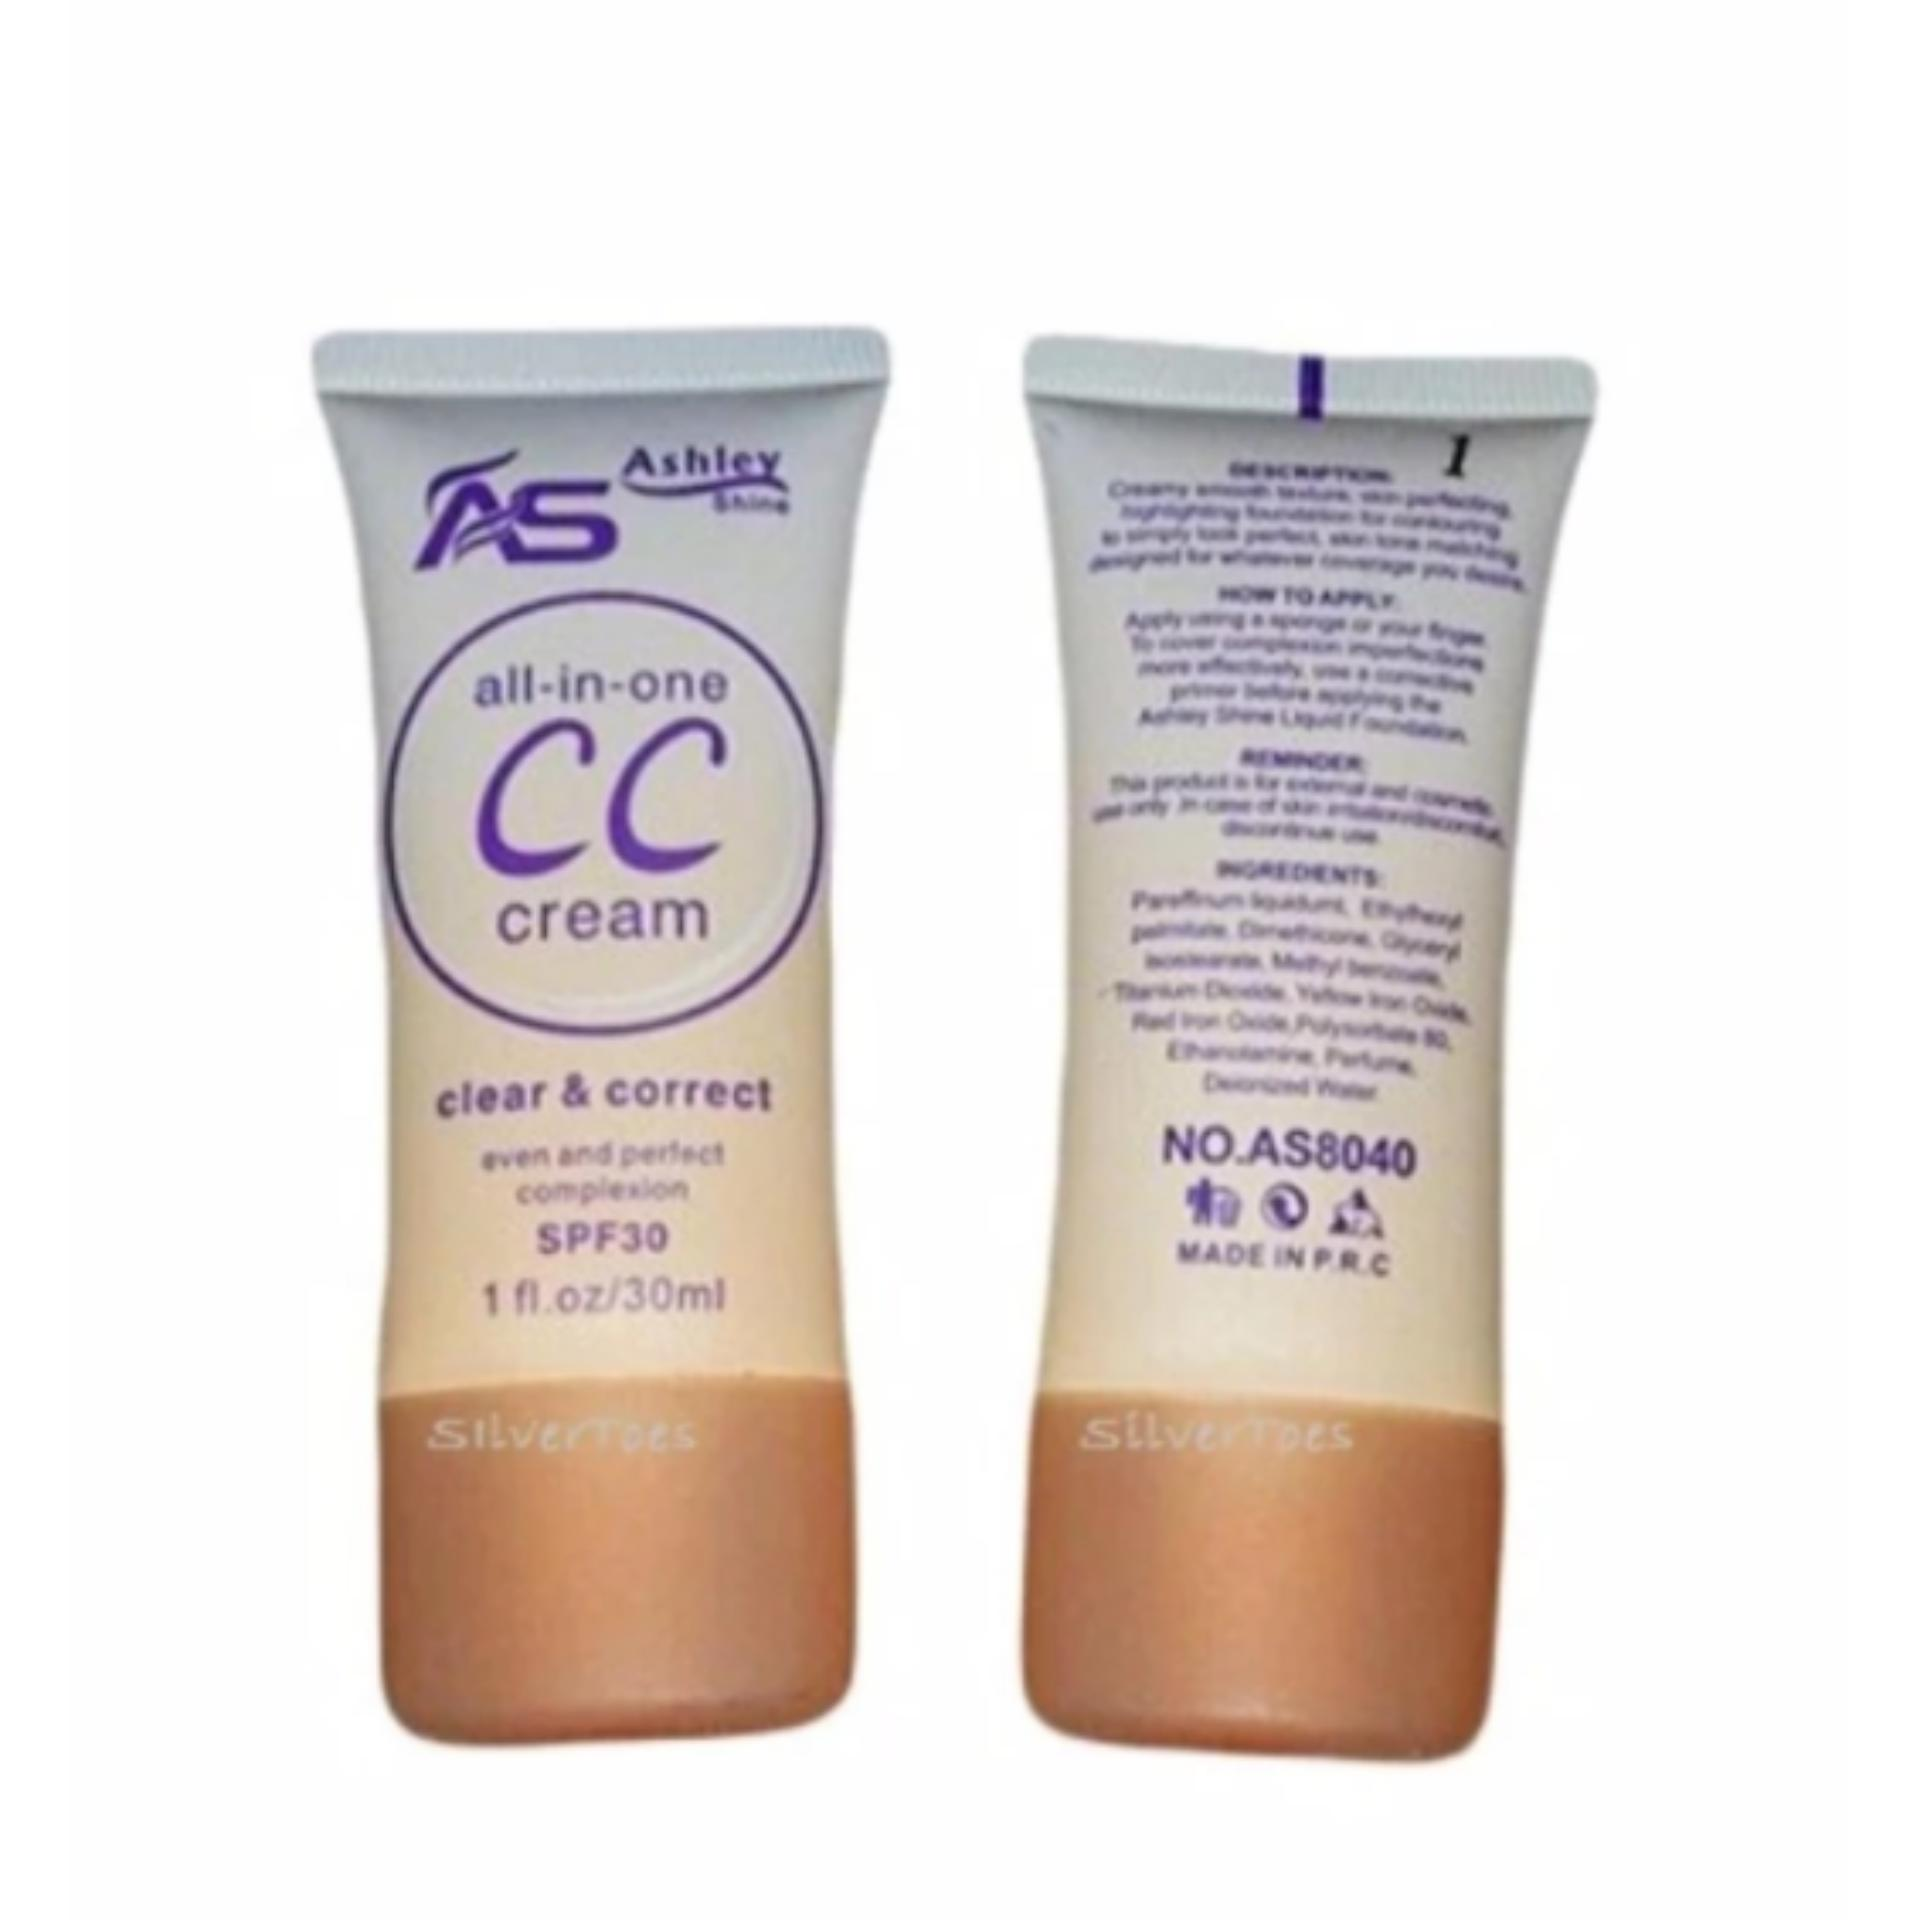 Ashley Shine CC Cream All-In-One NATURAL Shade#3